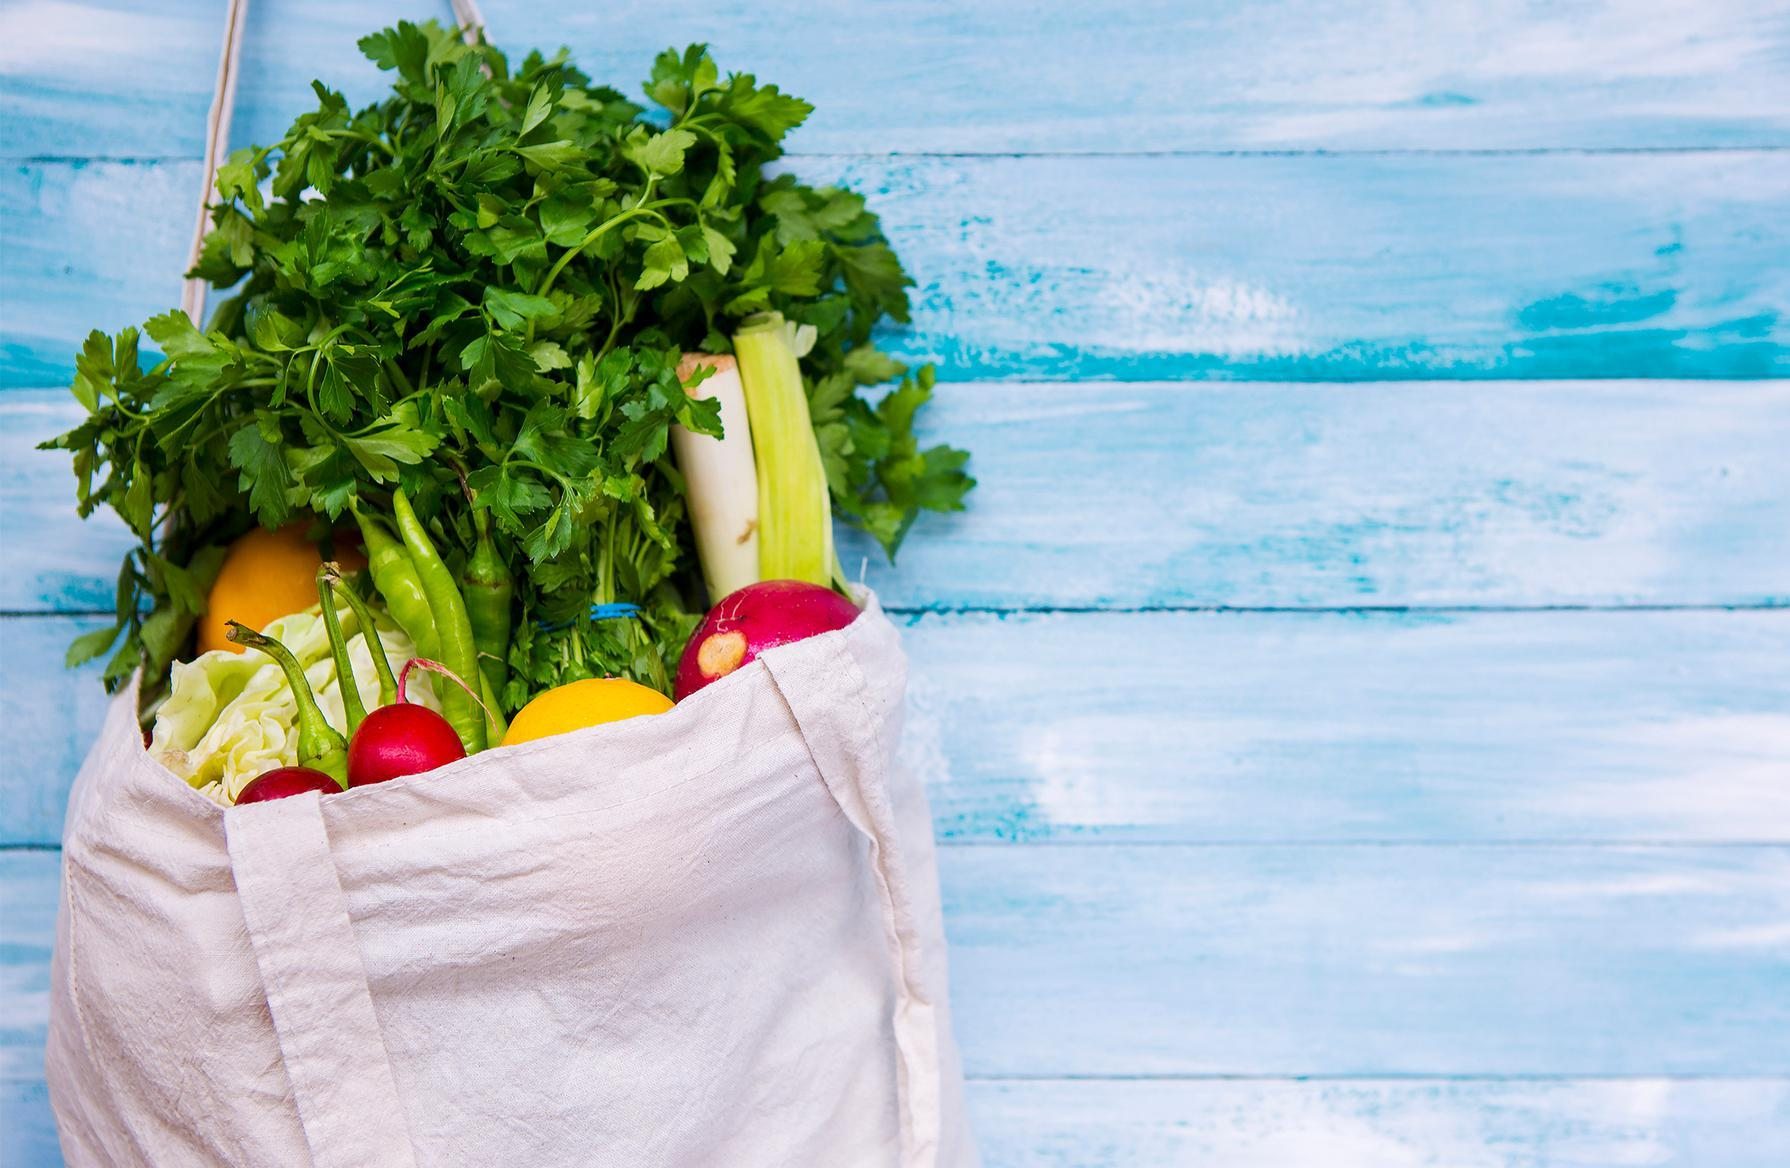 The Most Eco-Friendly Things You Buy at the Grocery Store